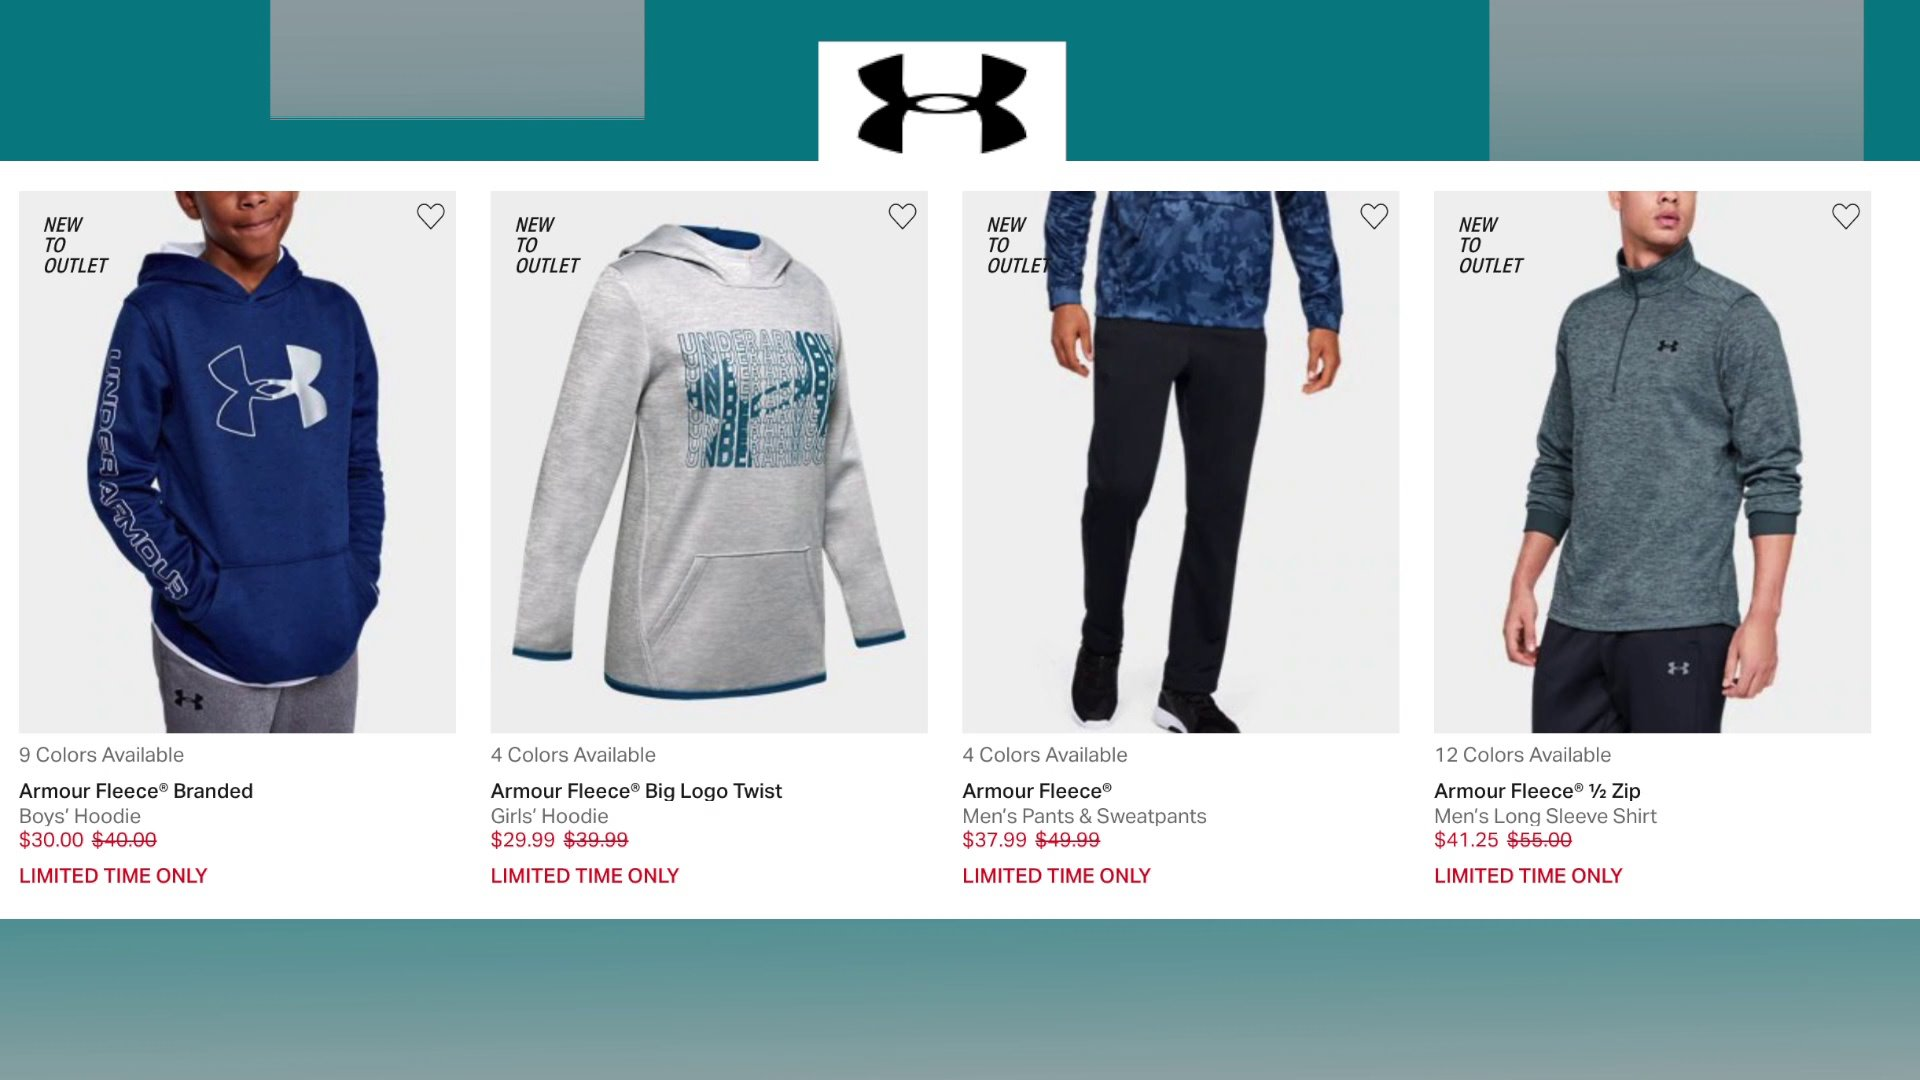 vaso Volcán yeso  Money Saver – Save up to 30% your favorite Under Armour gear | FOX 2